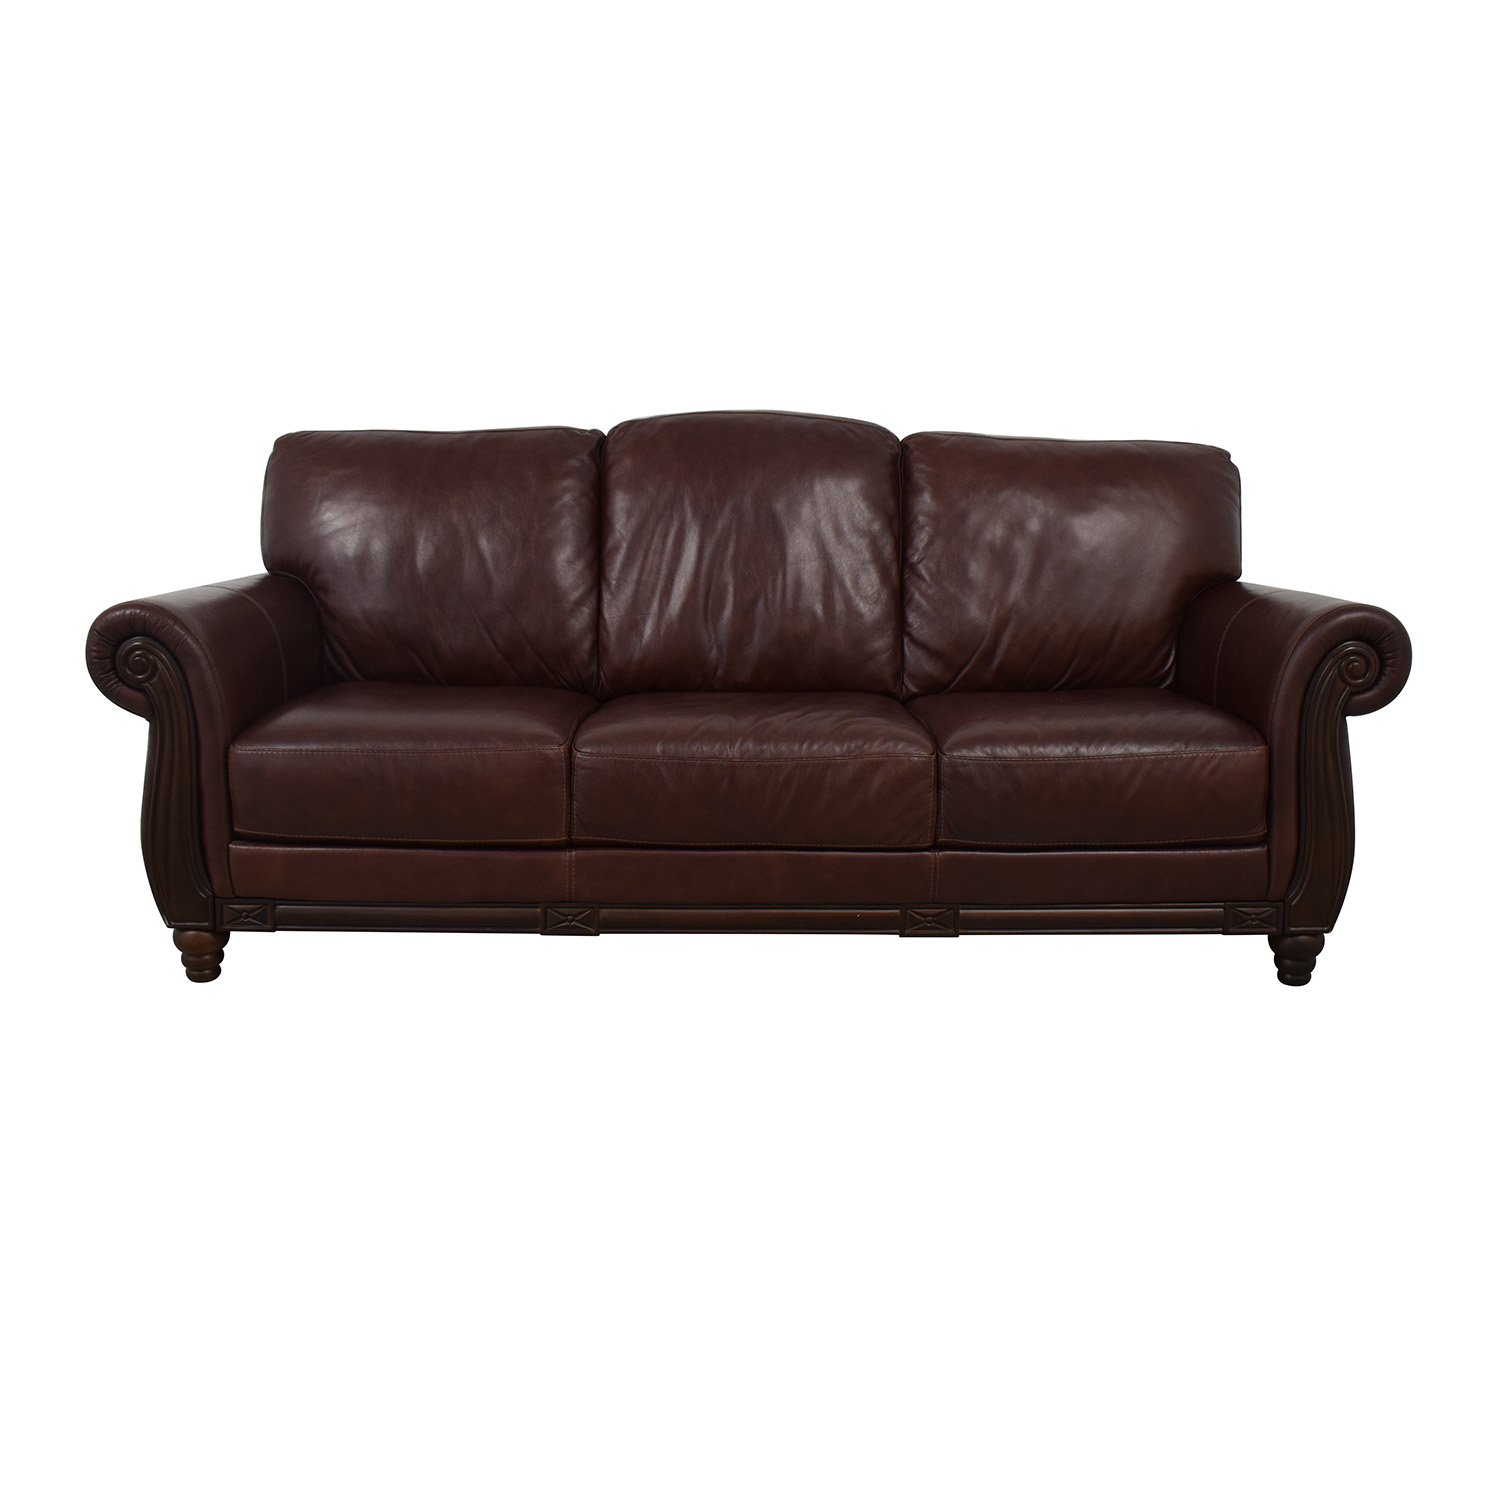 Chateau d'Ax Chateau d'Ax Three Seat Sofa second hand